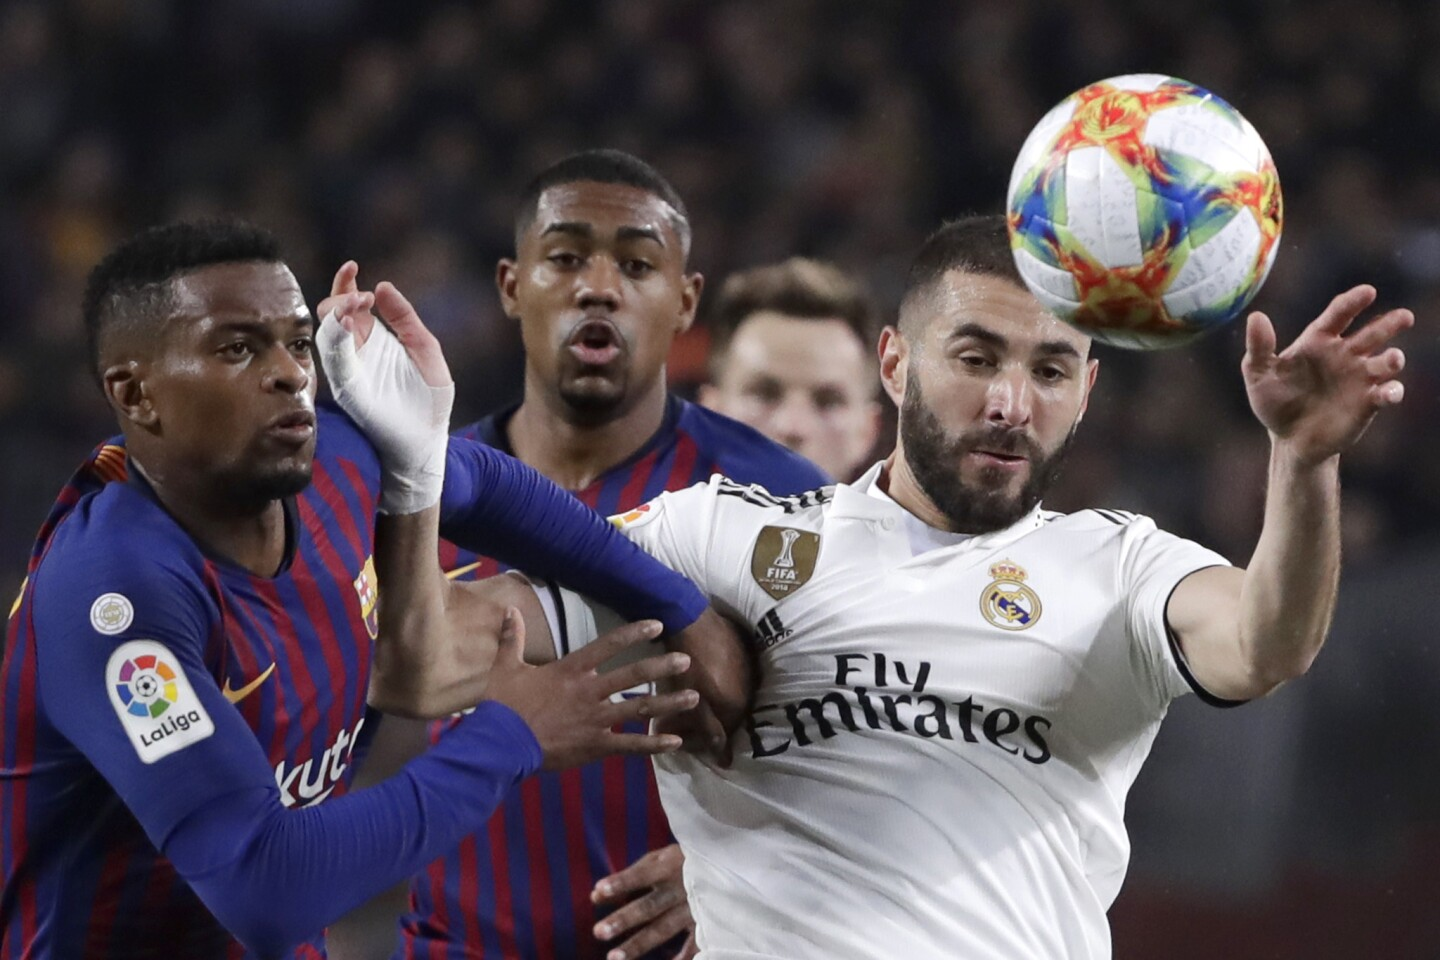 Barcelona defender Nelson Semedo uses his arms to prevent Real forward Karim Benzema from accepting a high ball during the Copa del Rey semifinal first leg soccer match between FC Barcelona and Real Madrid at the Camp Nou stadium in Barcelona, Spain, Wednesday Feb. 6, 2019. (AP Photo/Emilio Morenatti)